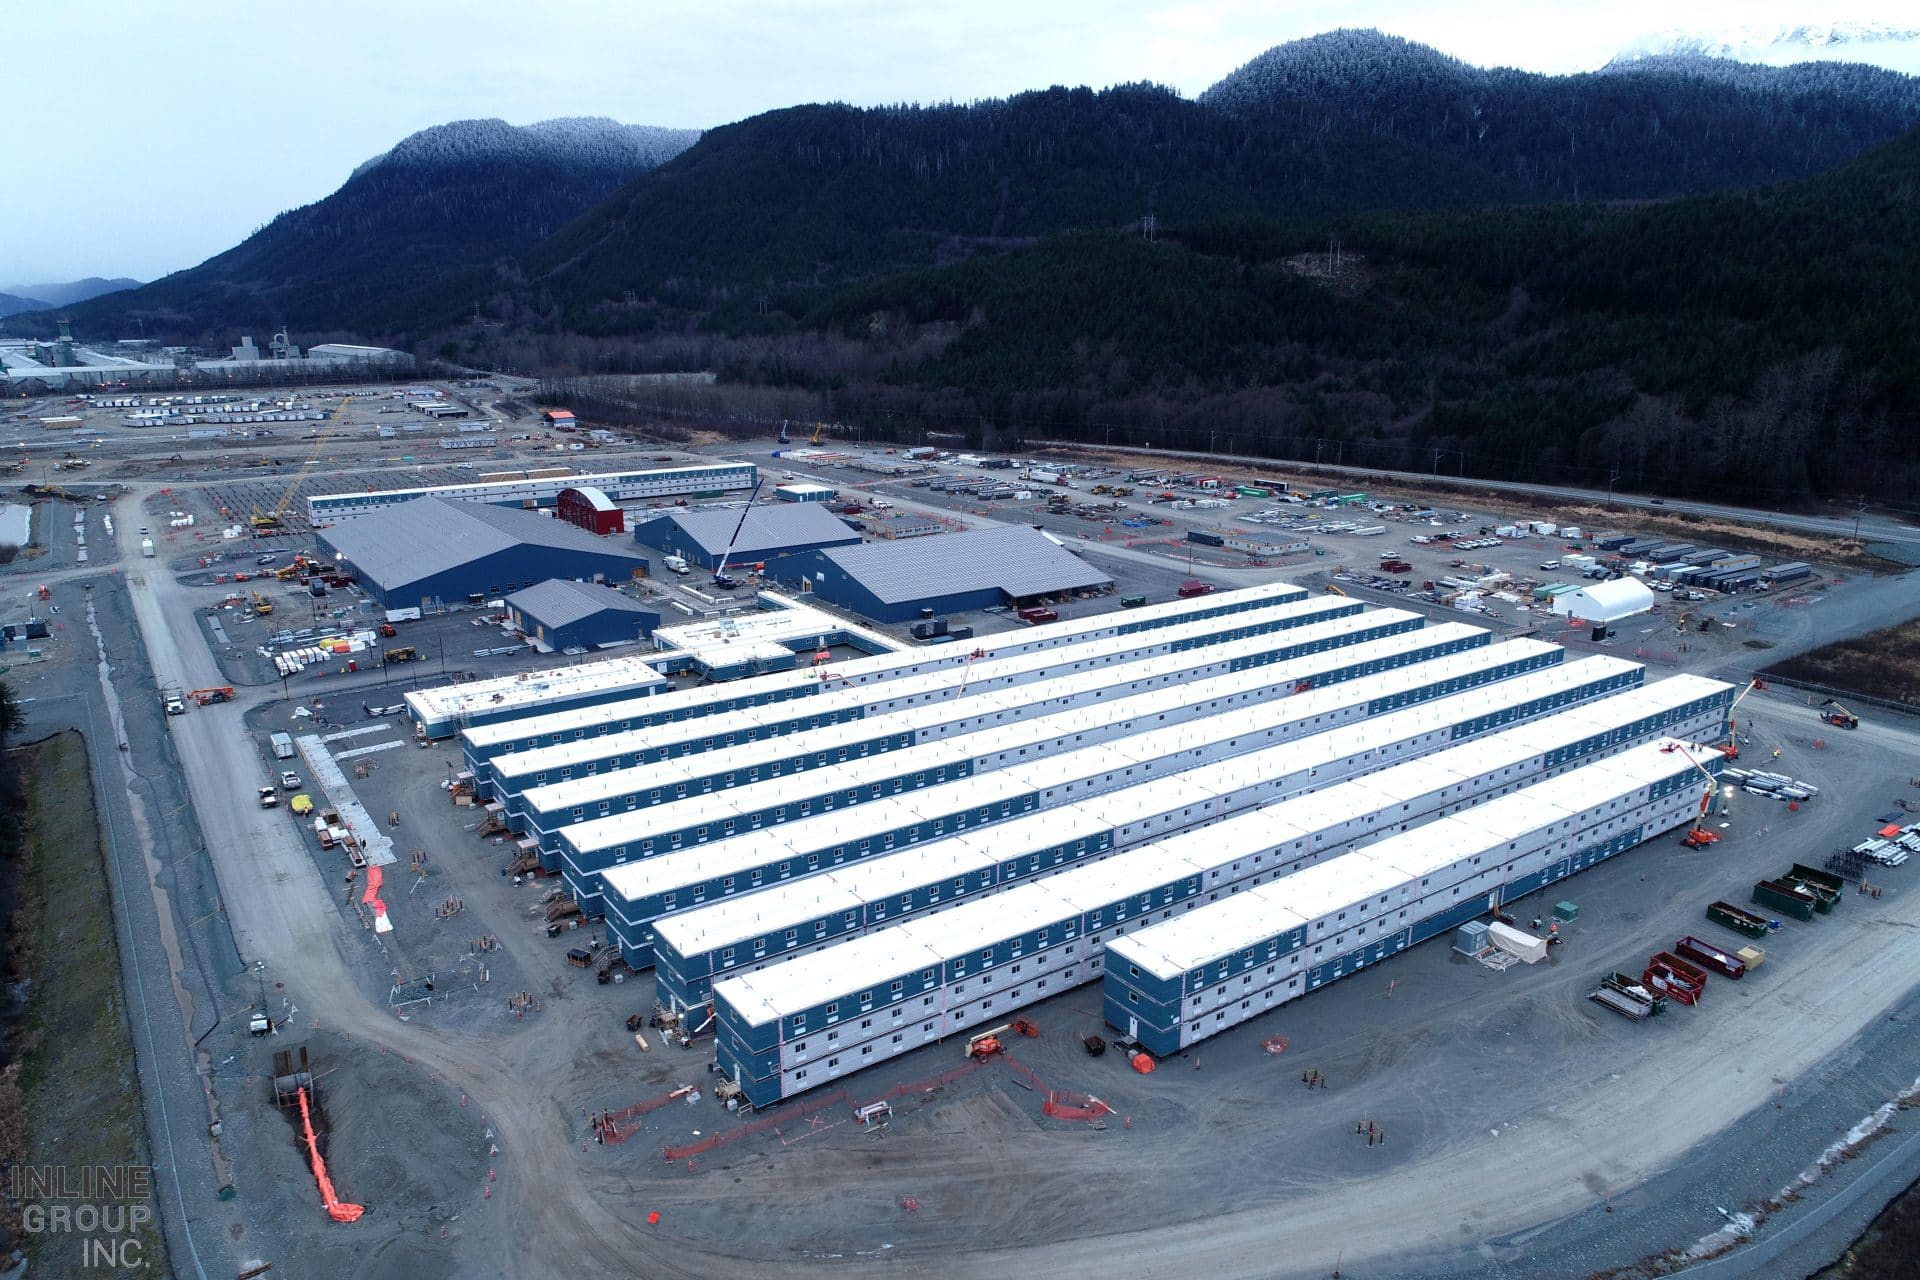 Construction of the Cedar Valley Lodge, worker housing at the LNG Canada project in Kitimat, B.C.